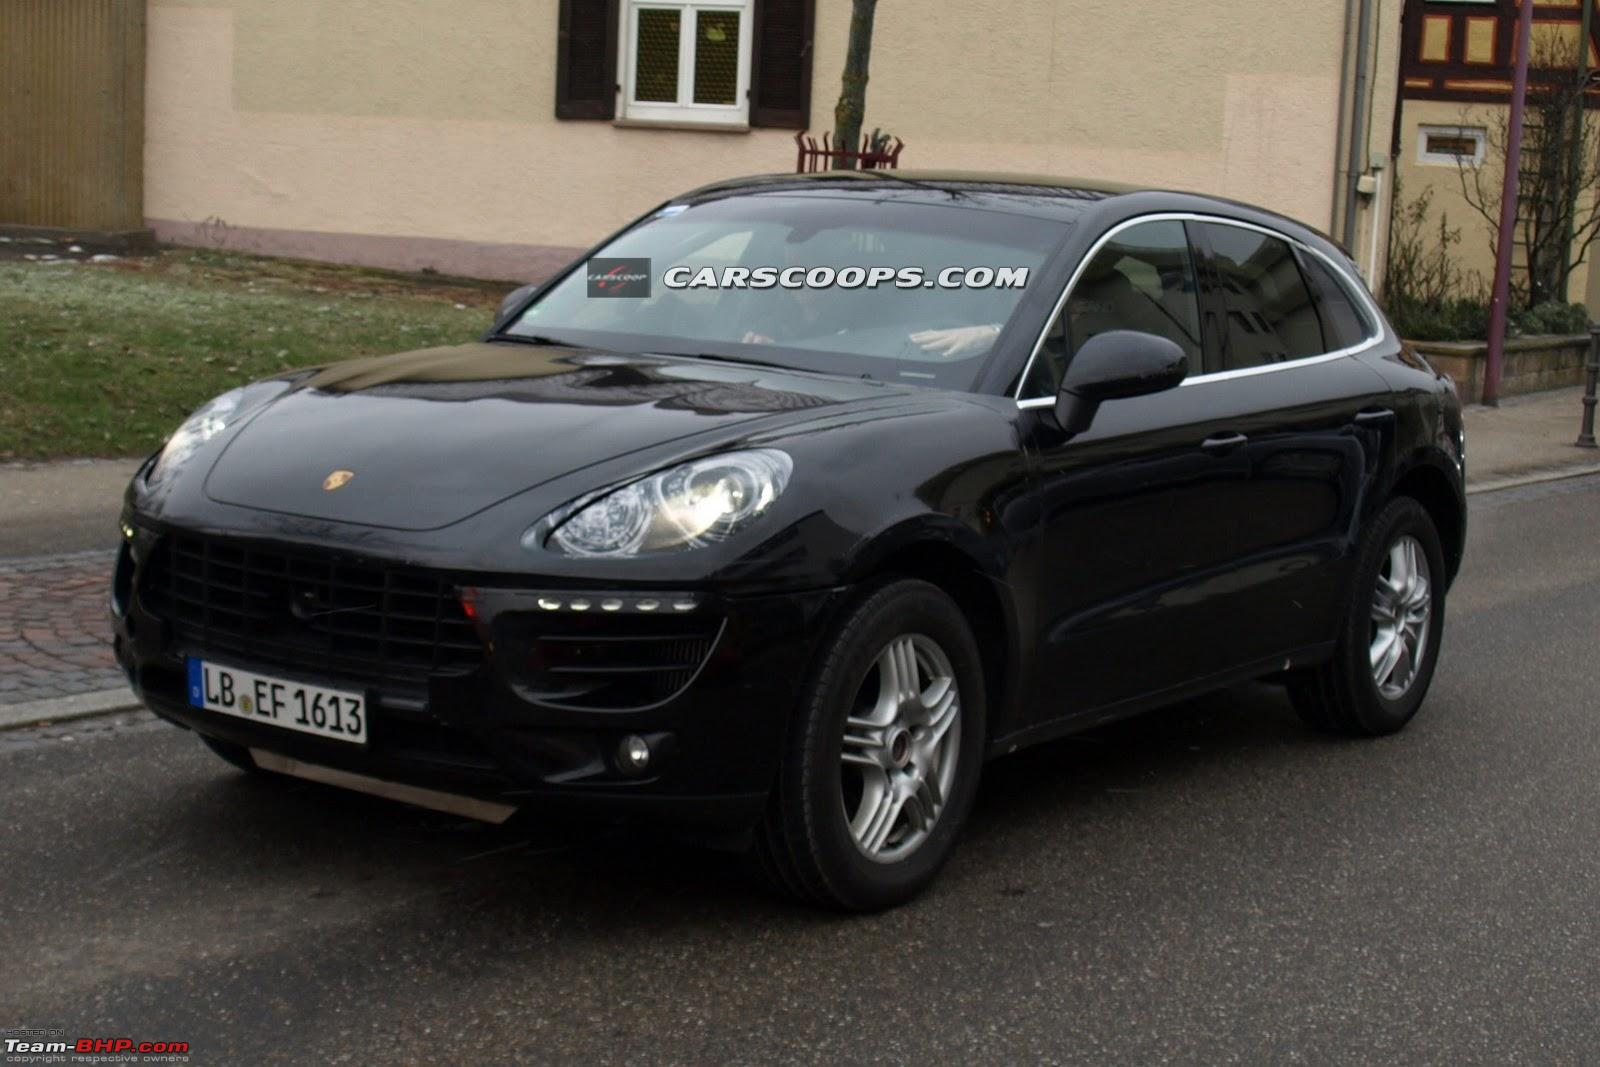 porsche macan baby suv coupe 39 page 2 team bhp. Black Bedroom Furniture Sets. Home Design Ideas